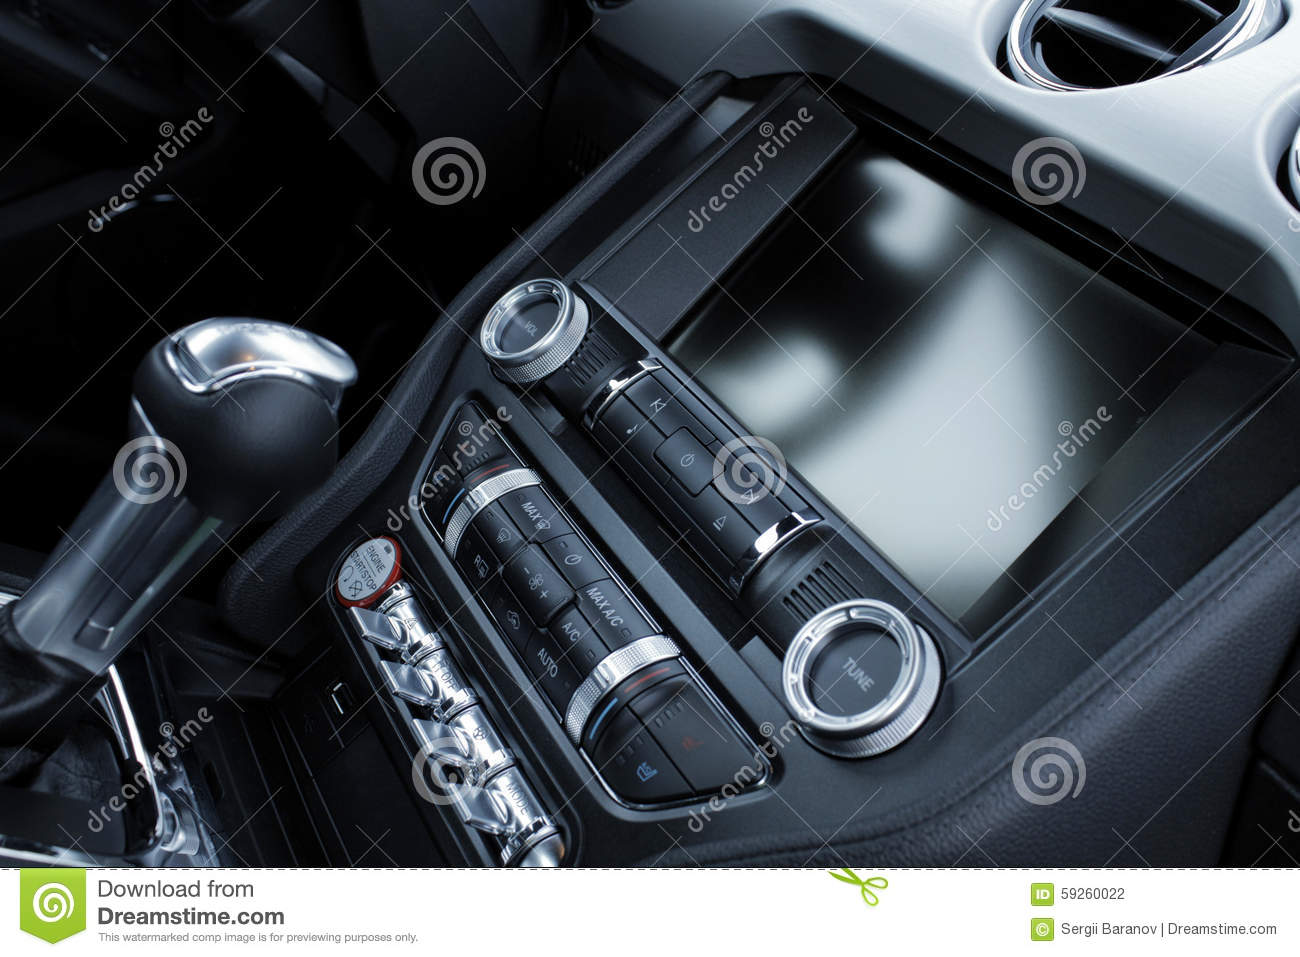 car interior dashboard and gear shift knob detailed stock photo image 59260022. Black Bedroom Furniture Sets. Home Design Ideas